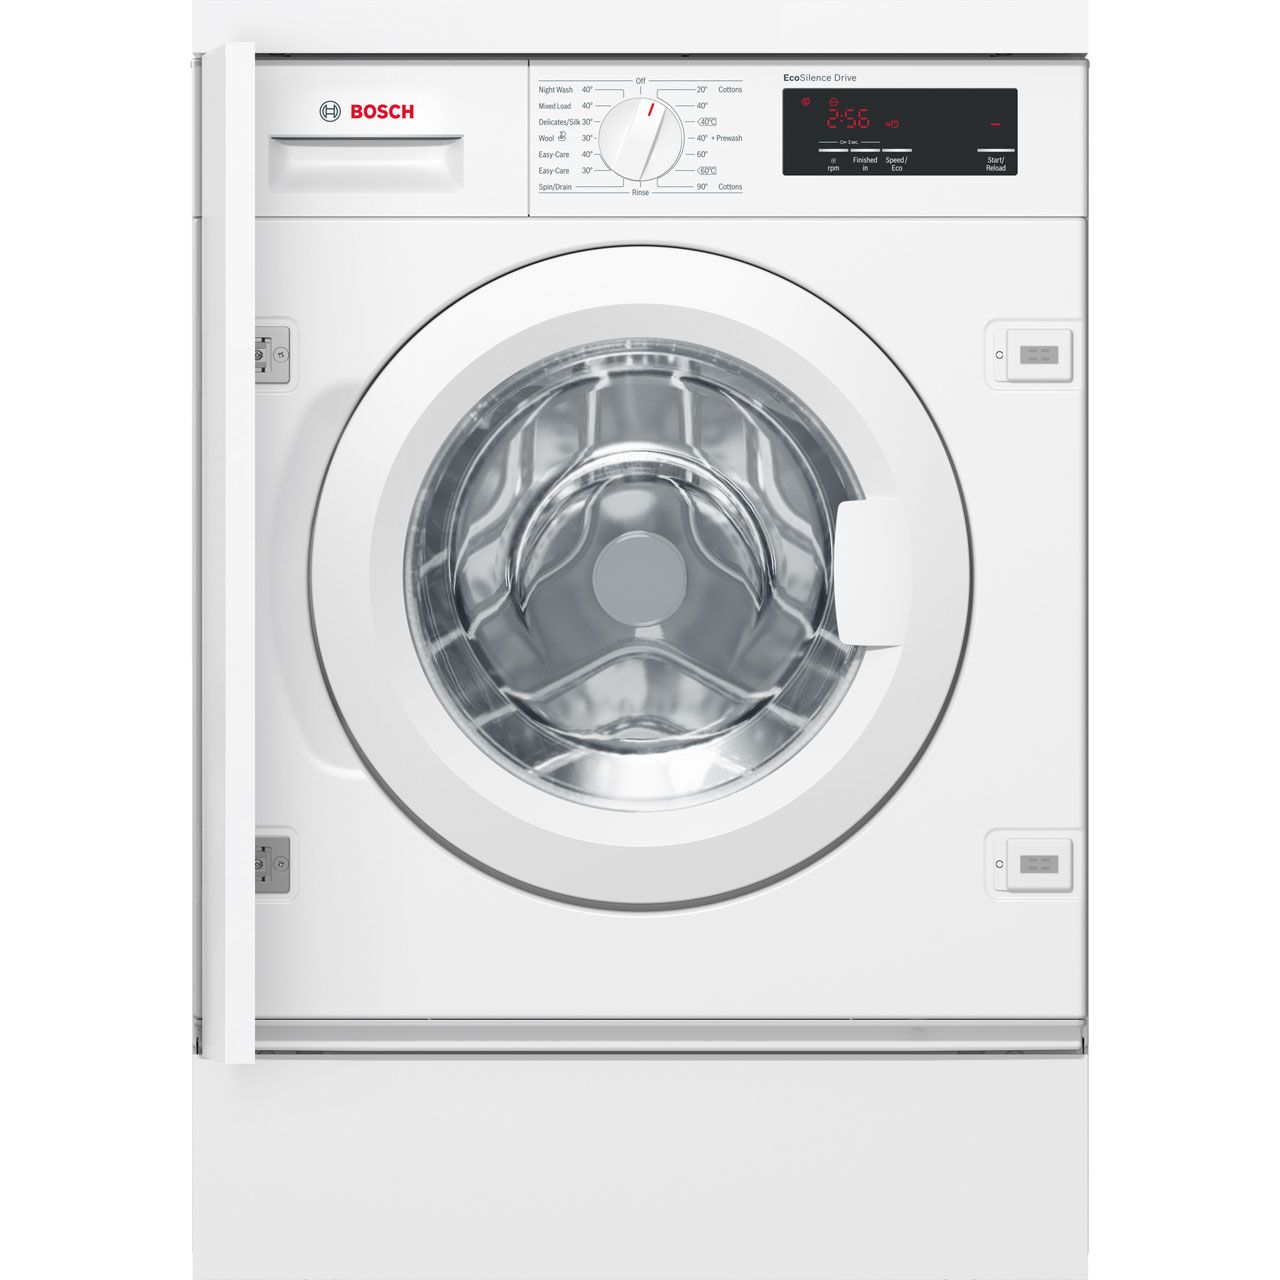 kitchens wiw28300gb wh   bosch washing machine   ao com   our kitchen      rh   pinterest com